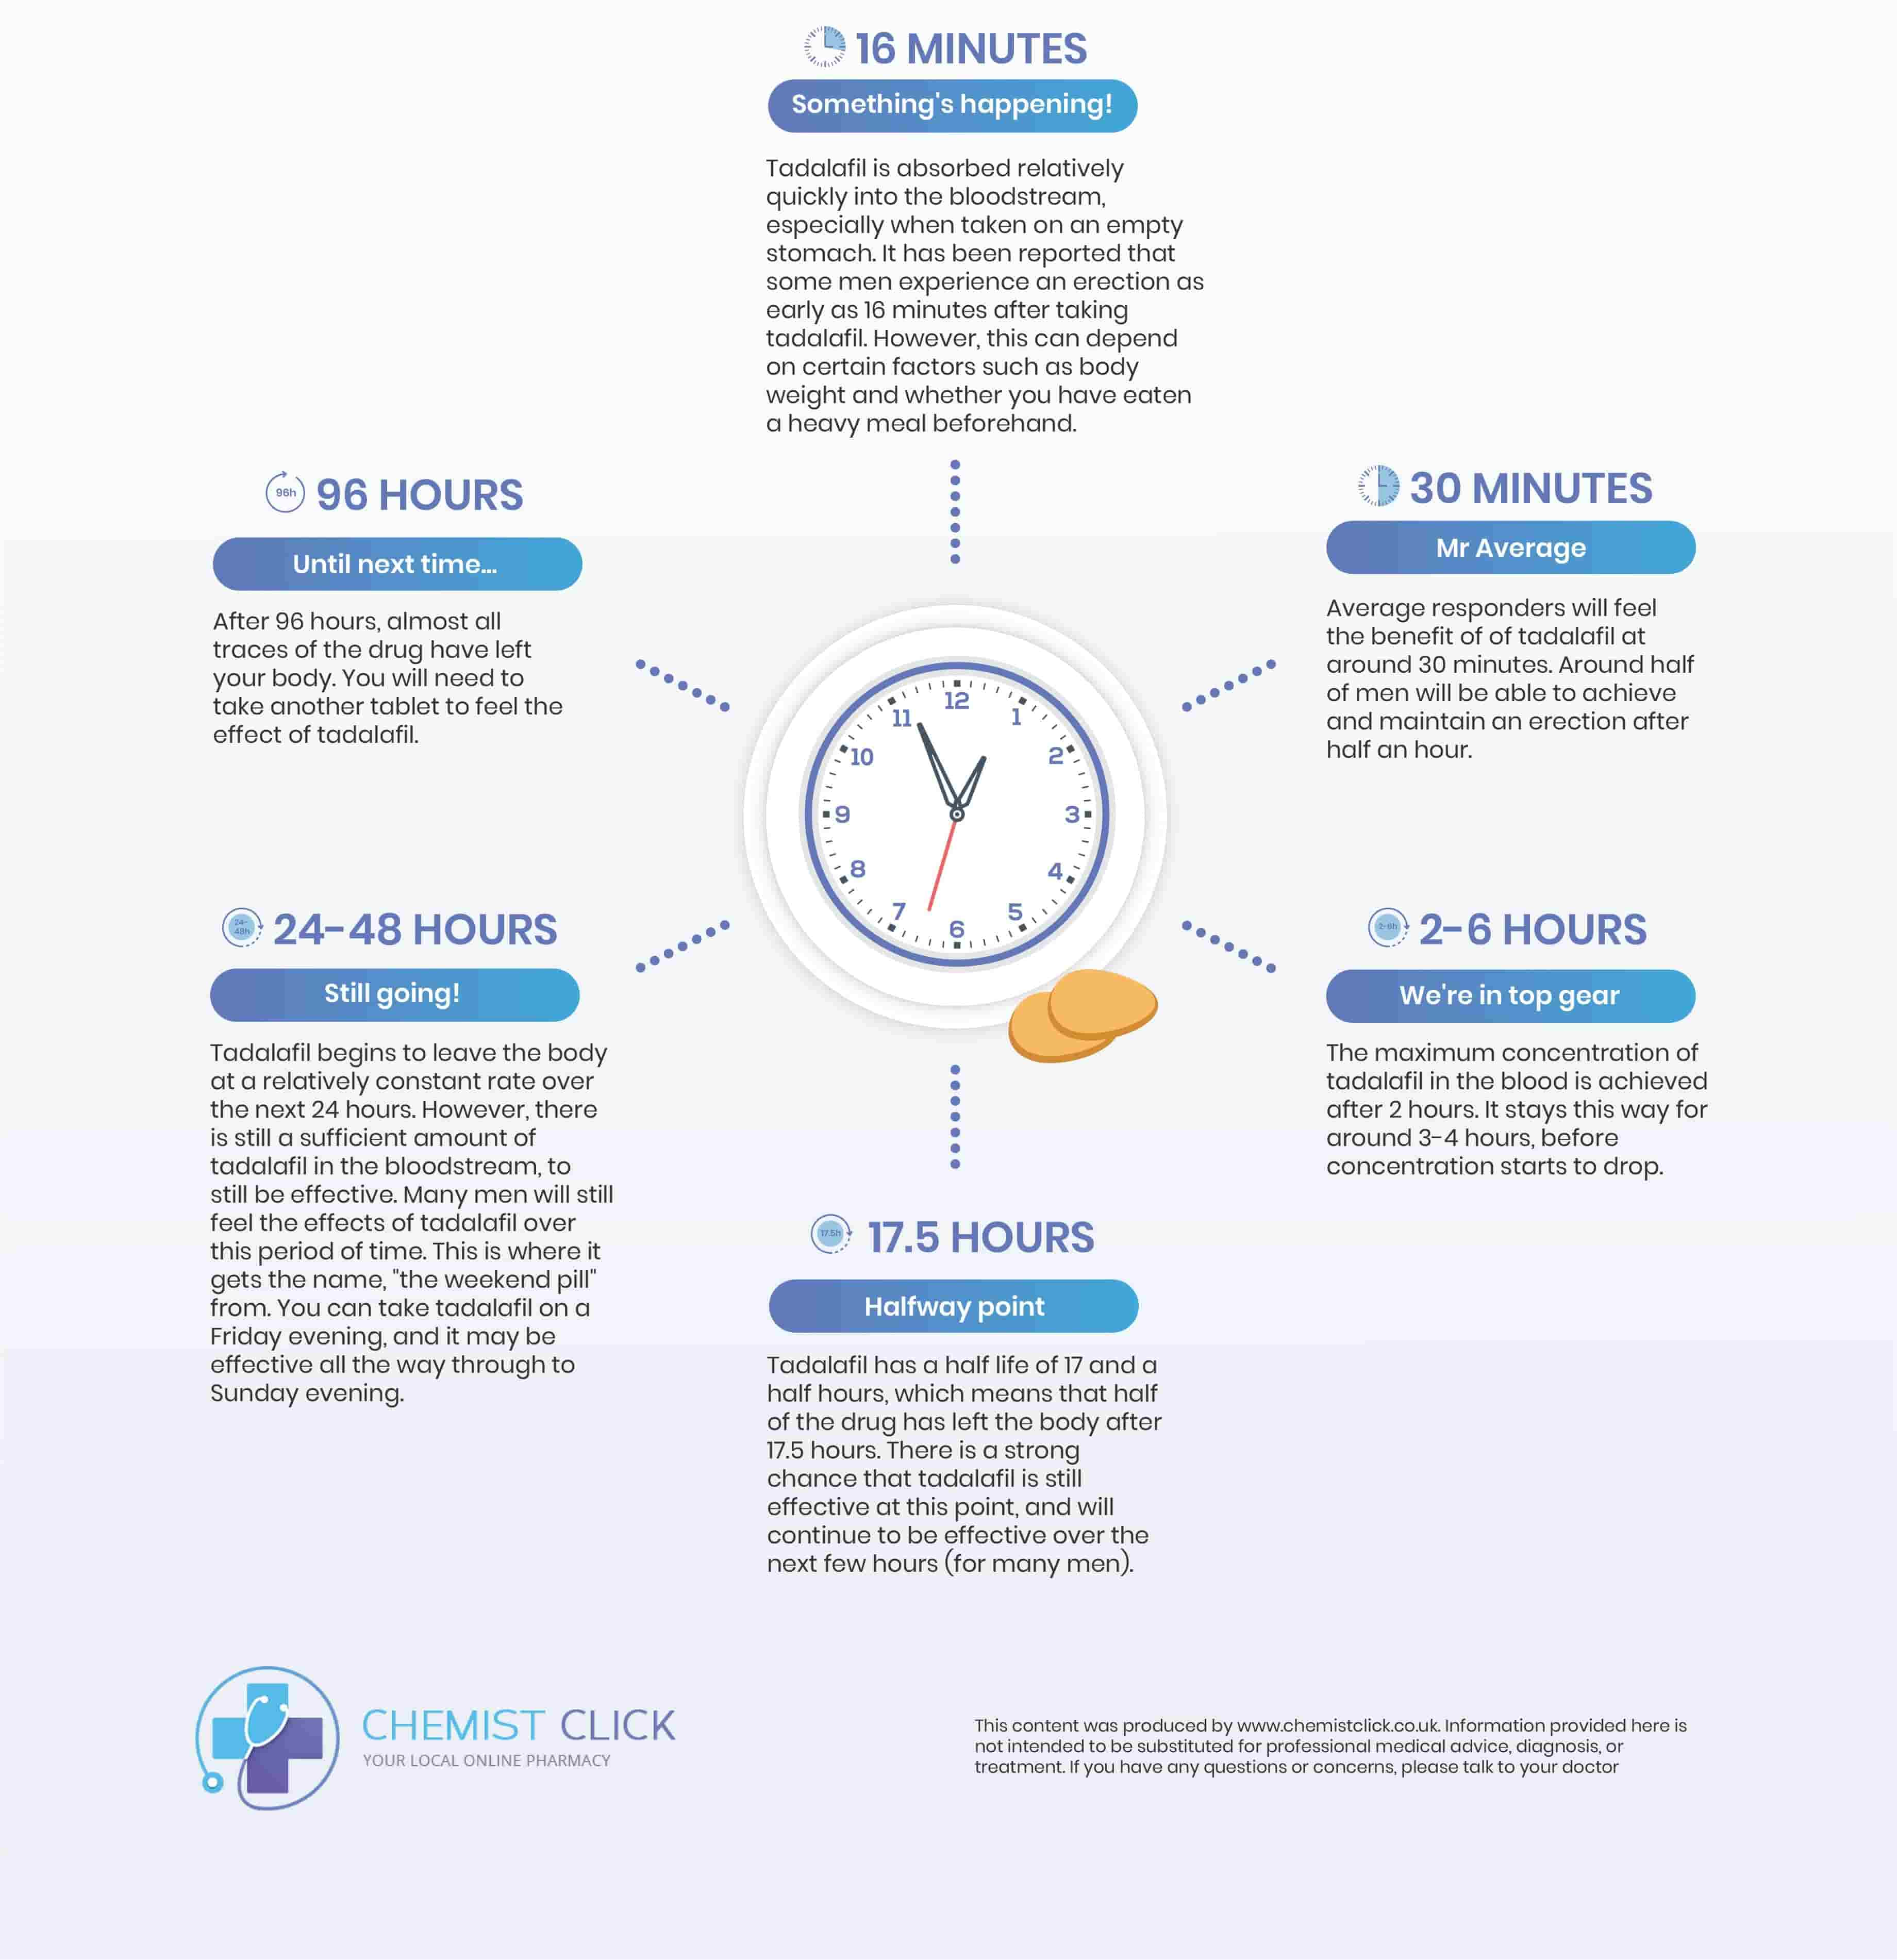 infographic showing what happens when you take tadalafil